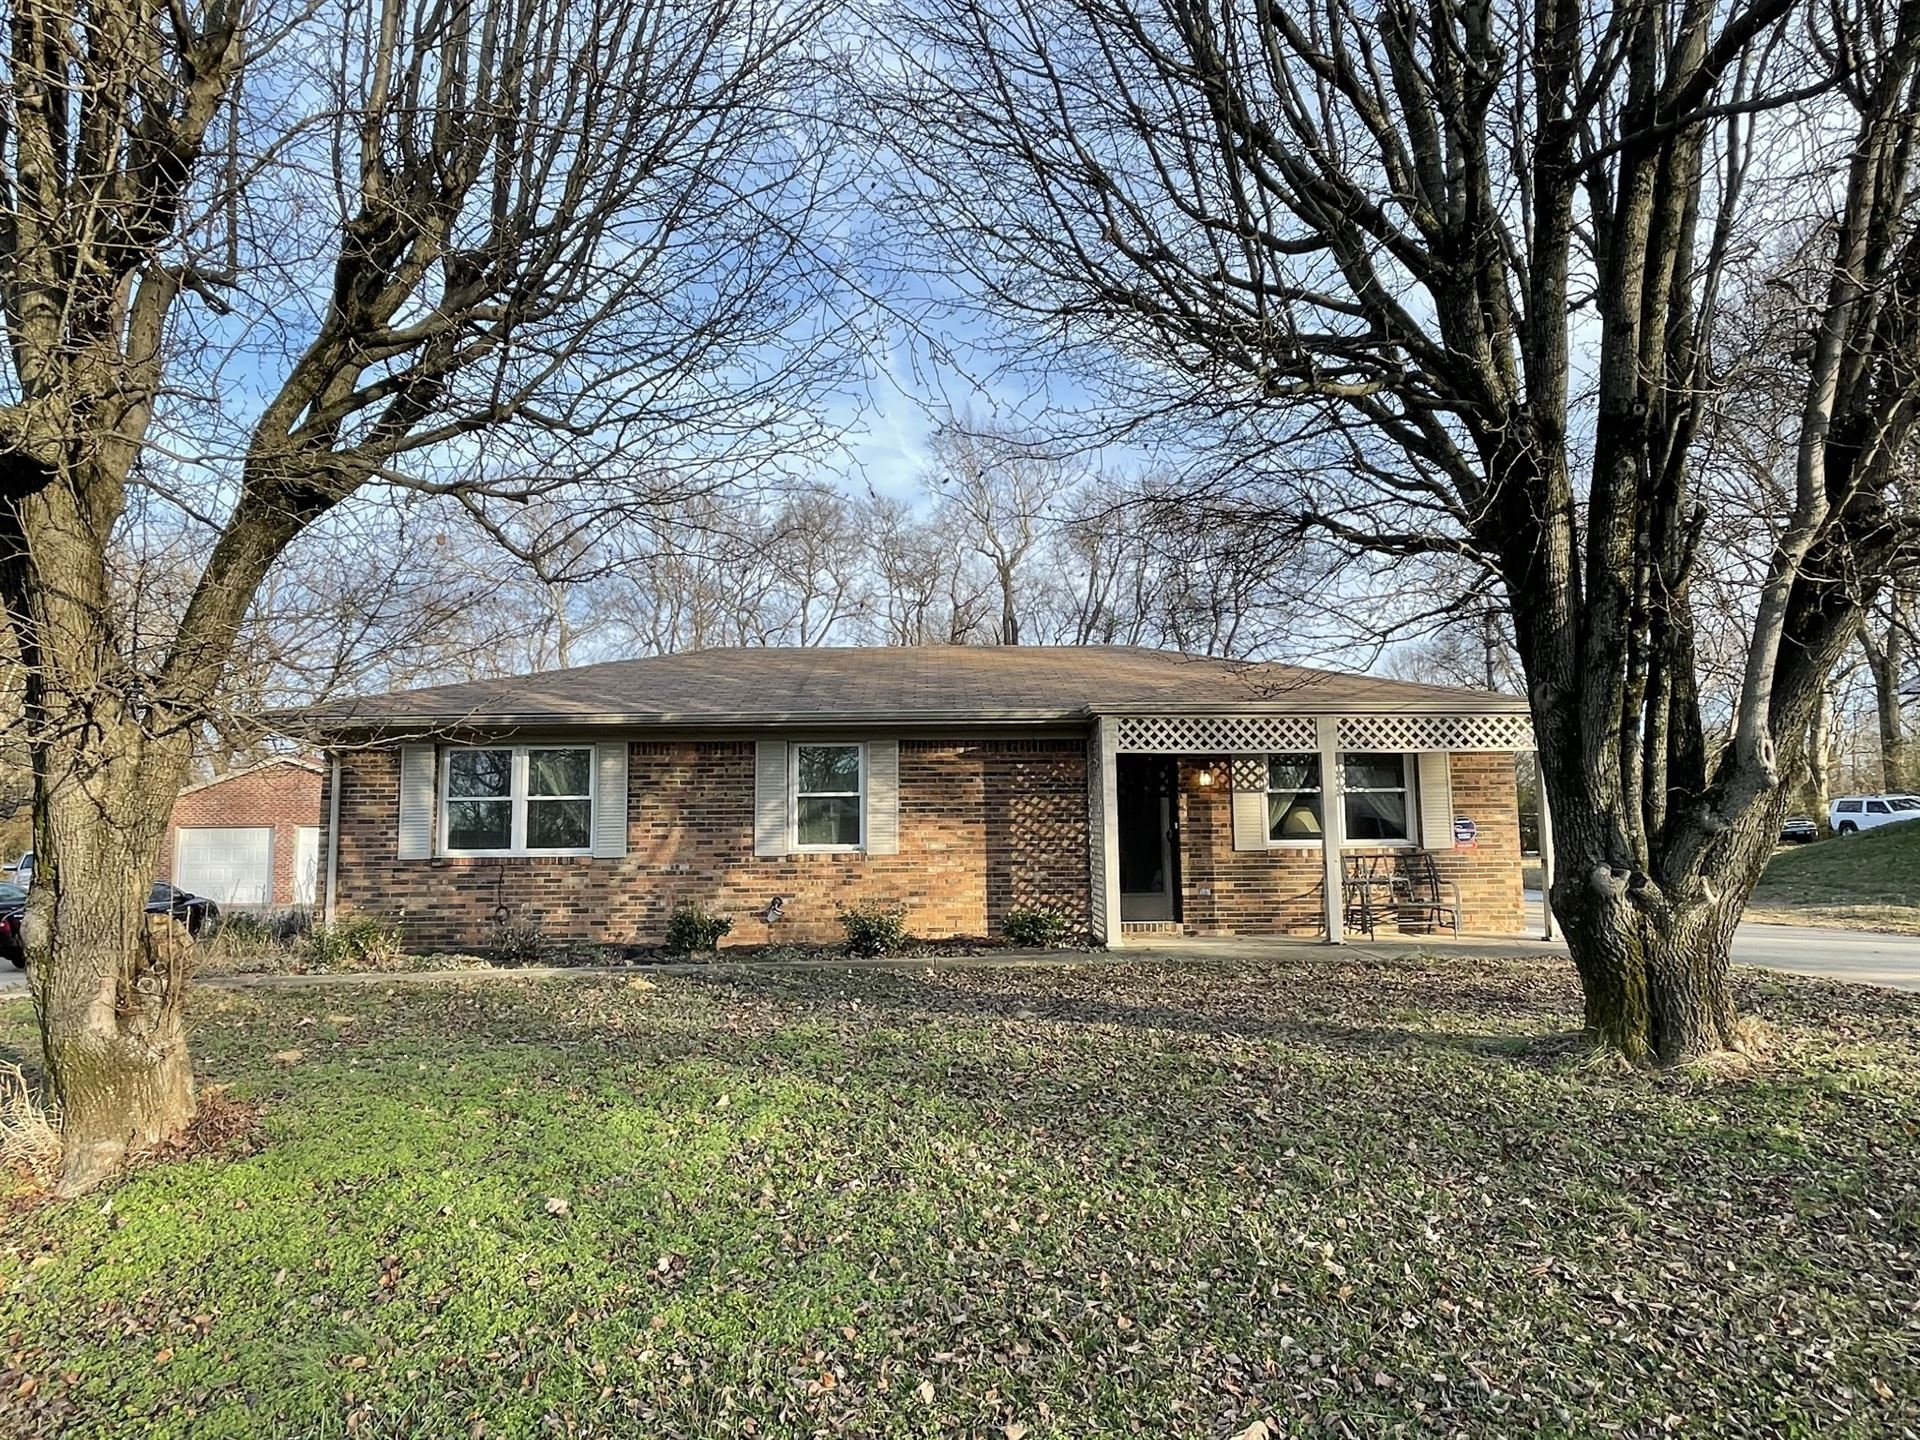 314 Hollywood Dr, Old Hickory, TN 37138 - MLS#: 2220063